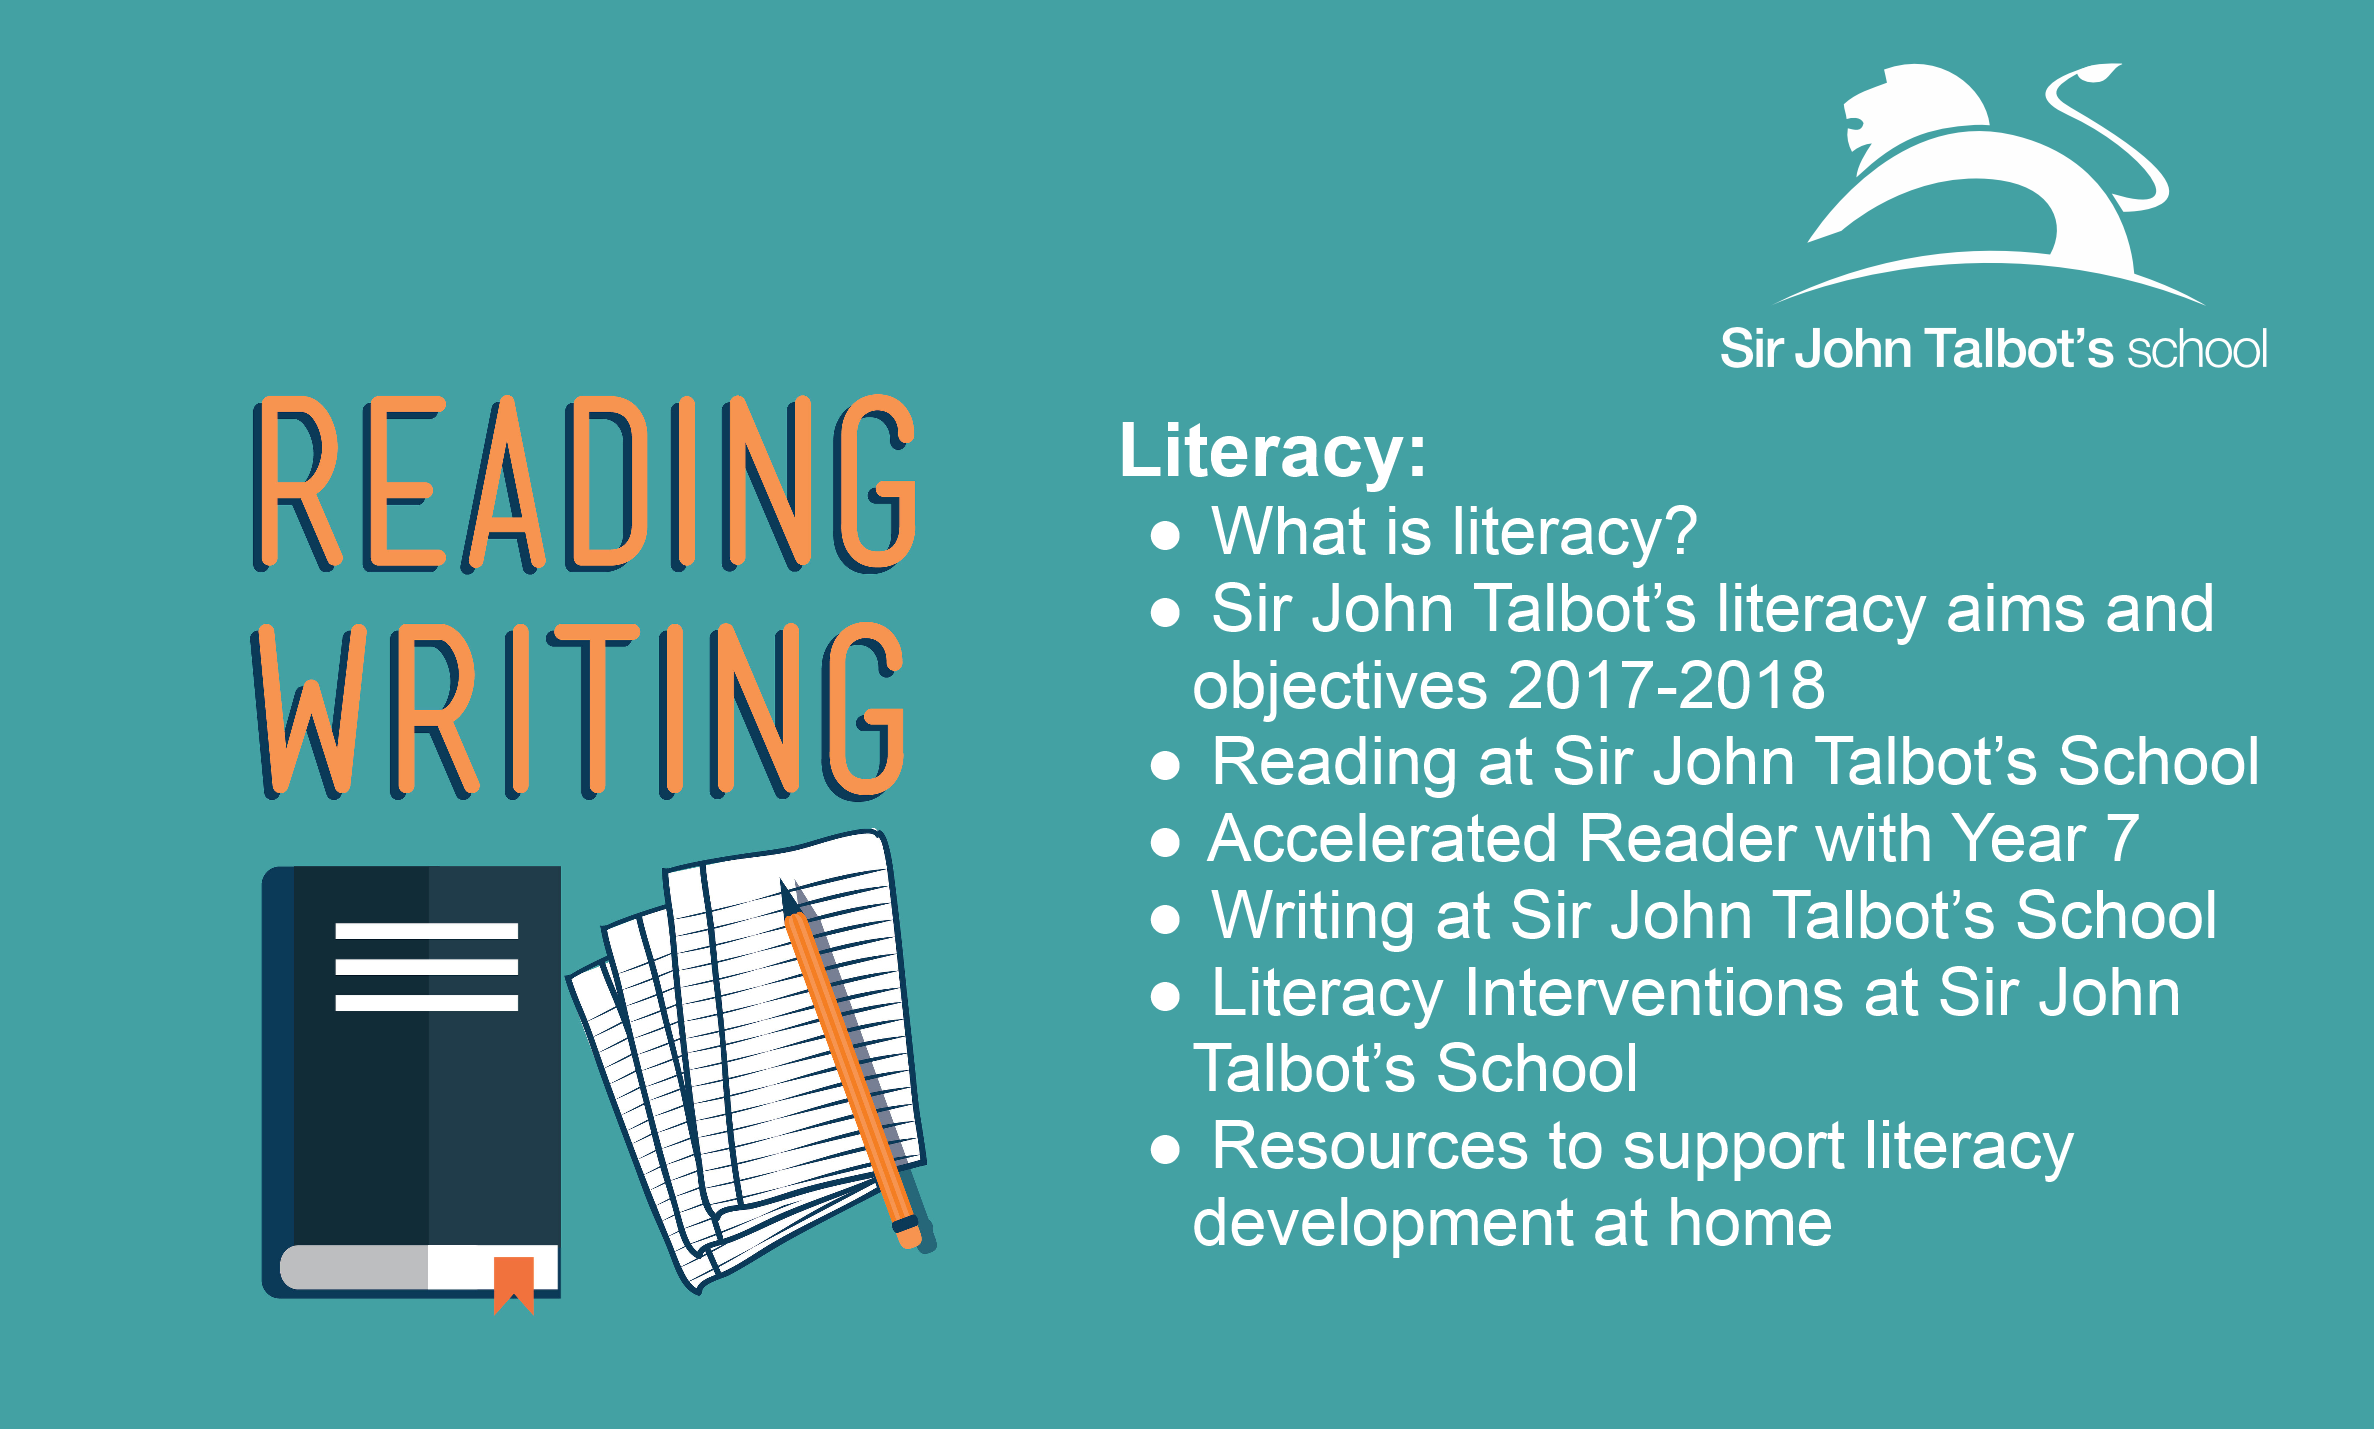 Please click here for more information on literacy at Sir John Talbot's School